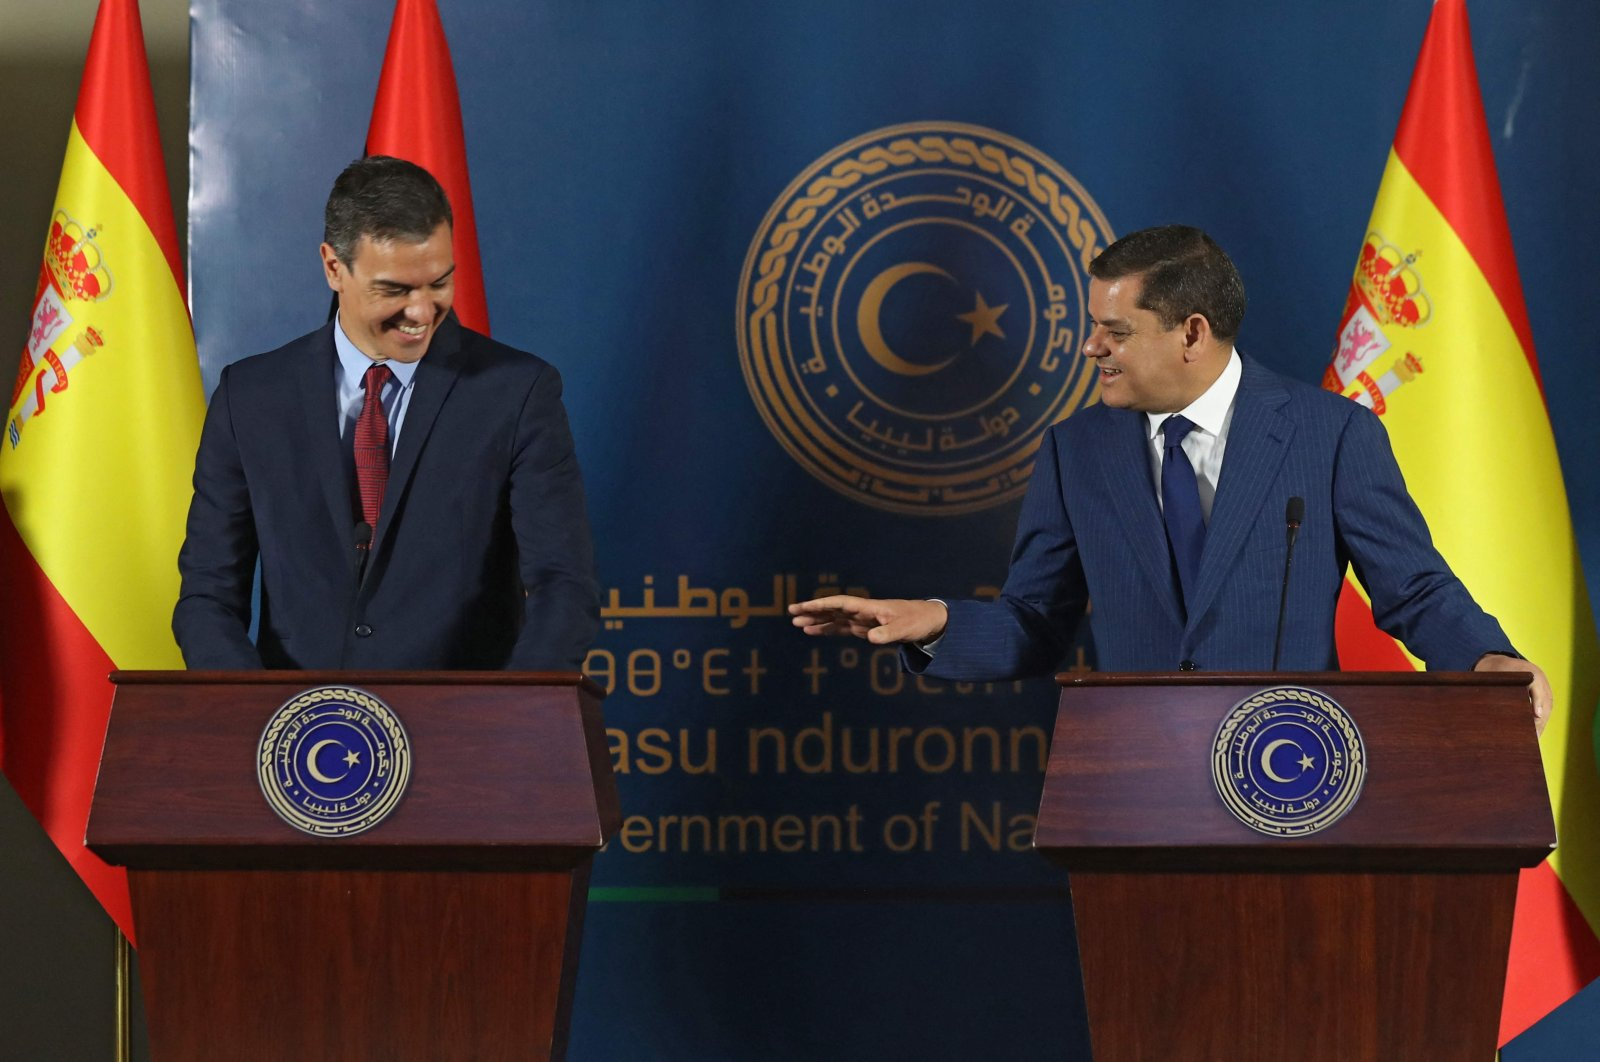 Spanish Prime Minister Pedro Sanchez (L) and his Libyan counterpart Abdulhamid Dbeibah speak during a press conference in the Libyan capital Tripoli on June 3, 2021. (AFP Photo)